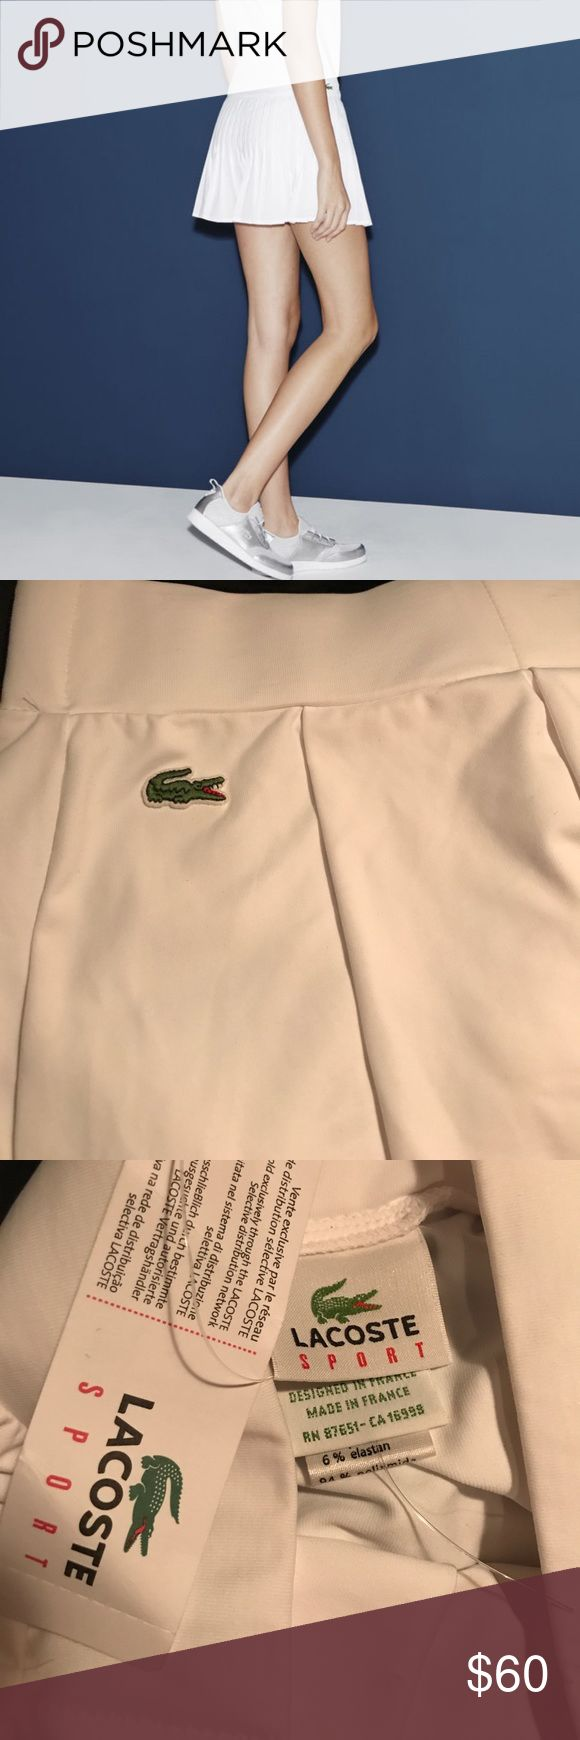 "LACOSTE SPORT TENNIS SKIRT NWT- white skirt polyamide and elastic size 4 ""DEVANLAY"" made in France Lacoste Skirts Mini"